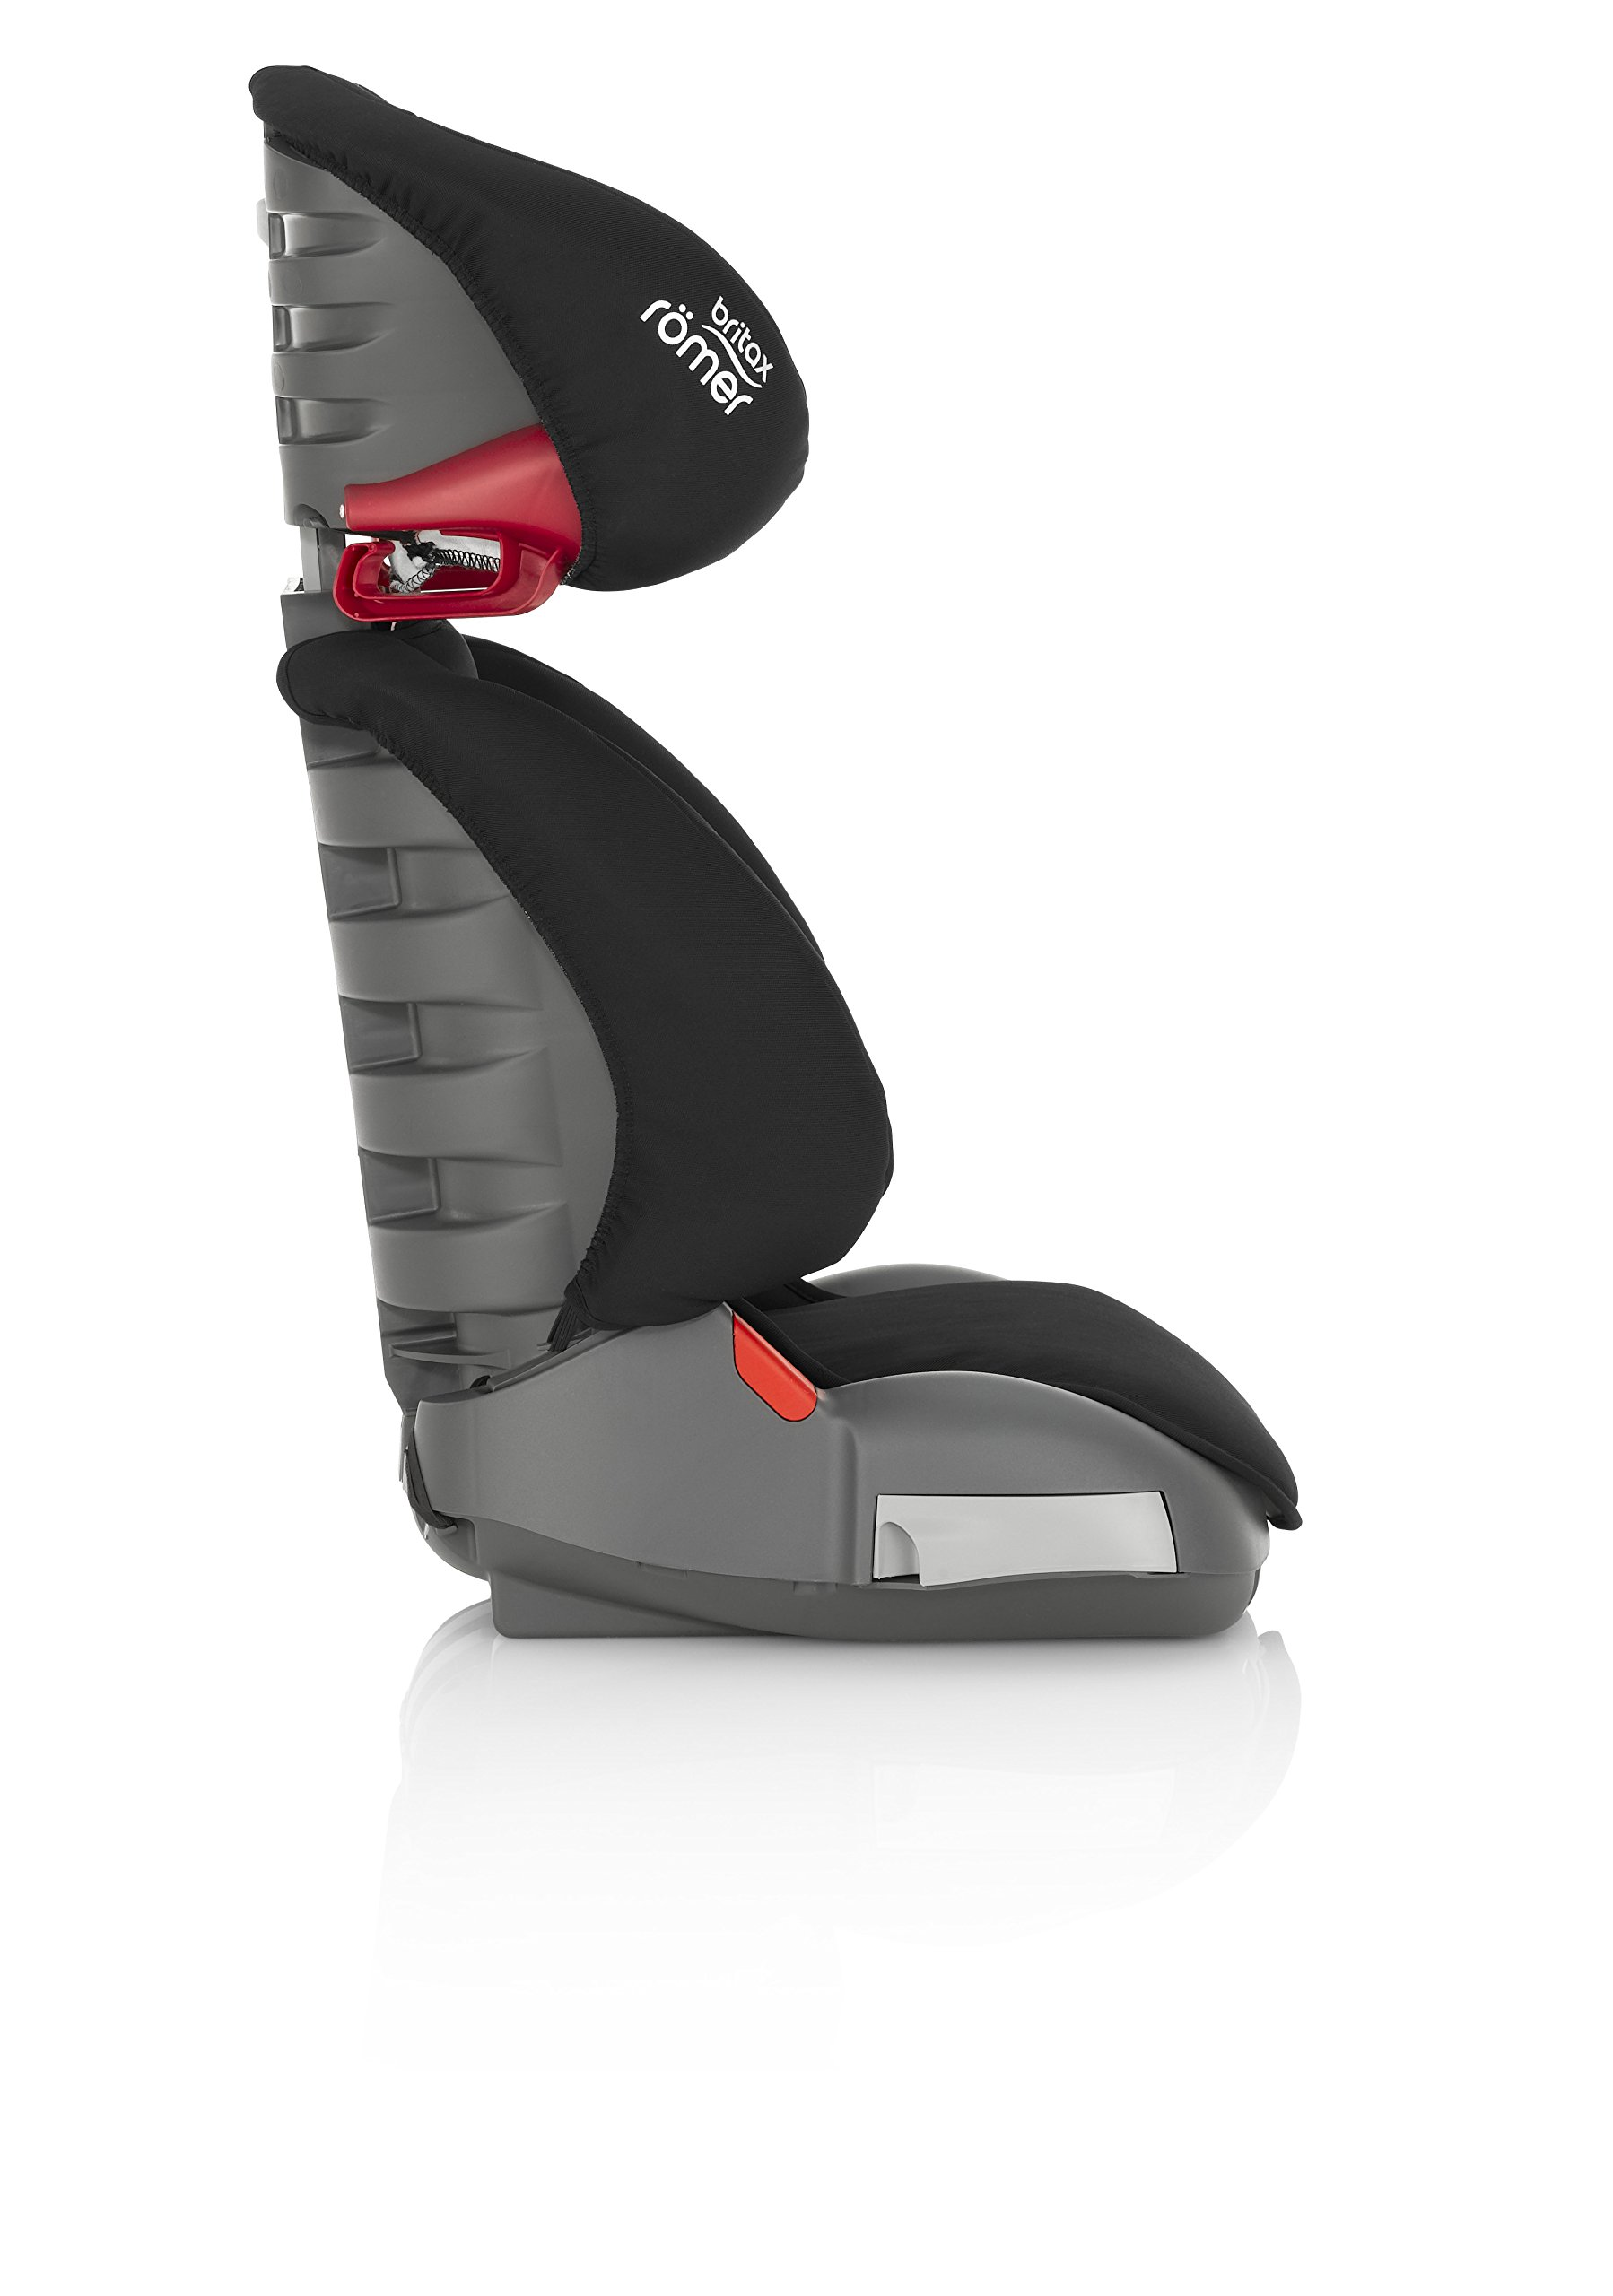 Britax Römer ADVENTURE Group 2-3 (15-36kg) Car Seat - Cosmos Black Britax Römer Intuitively positioned seat belt guides for straightforward installation every time. Machine washable seat cover that can easily be removed, so you can clean up quick and get on your way Reassurance of highback booster safety with side impact protection Lightweight, easily transferable shell 8